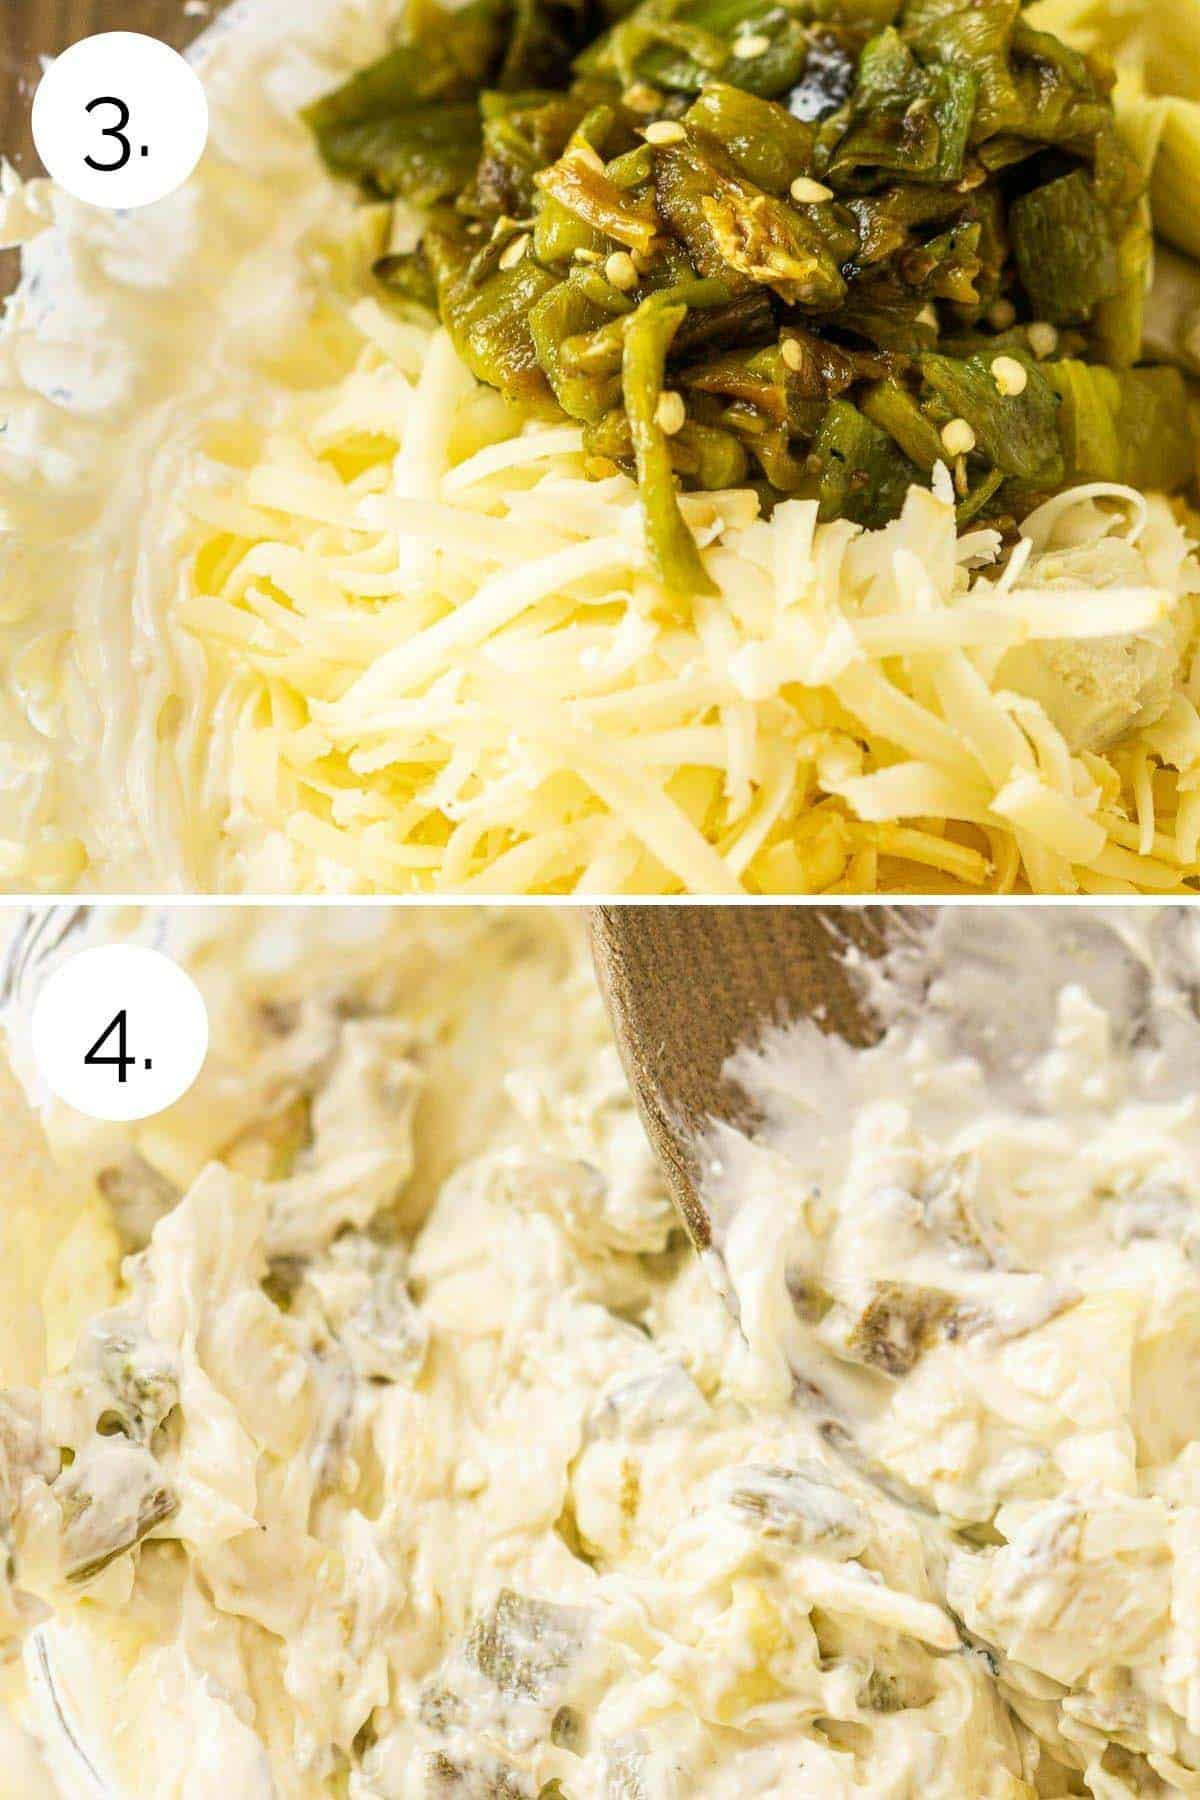 Mixing in the additional ingredients into the cream cheese.